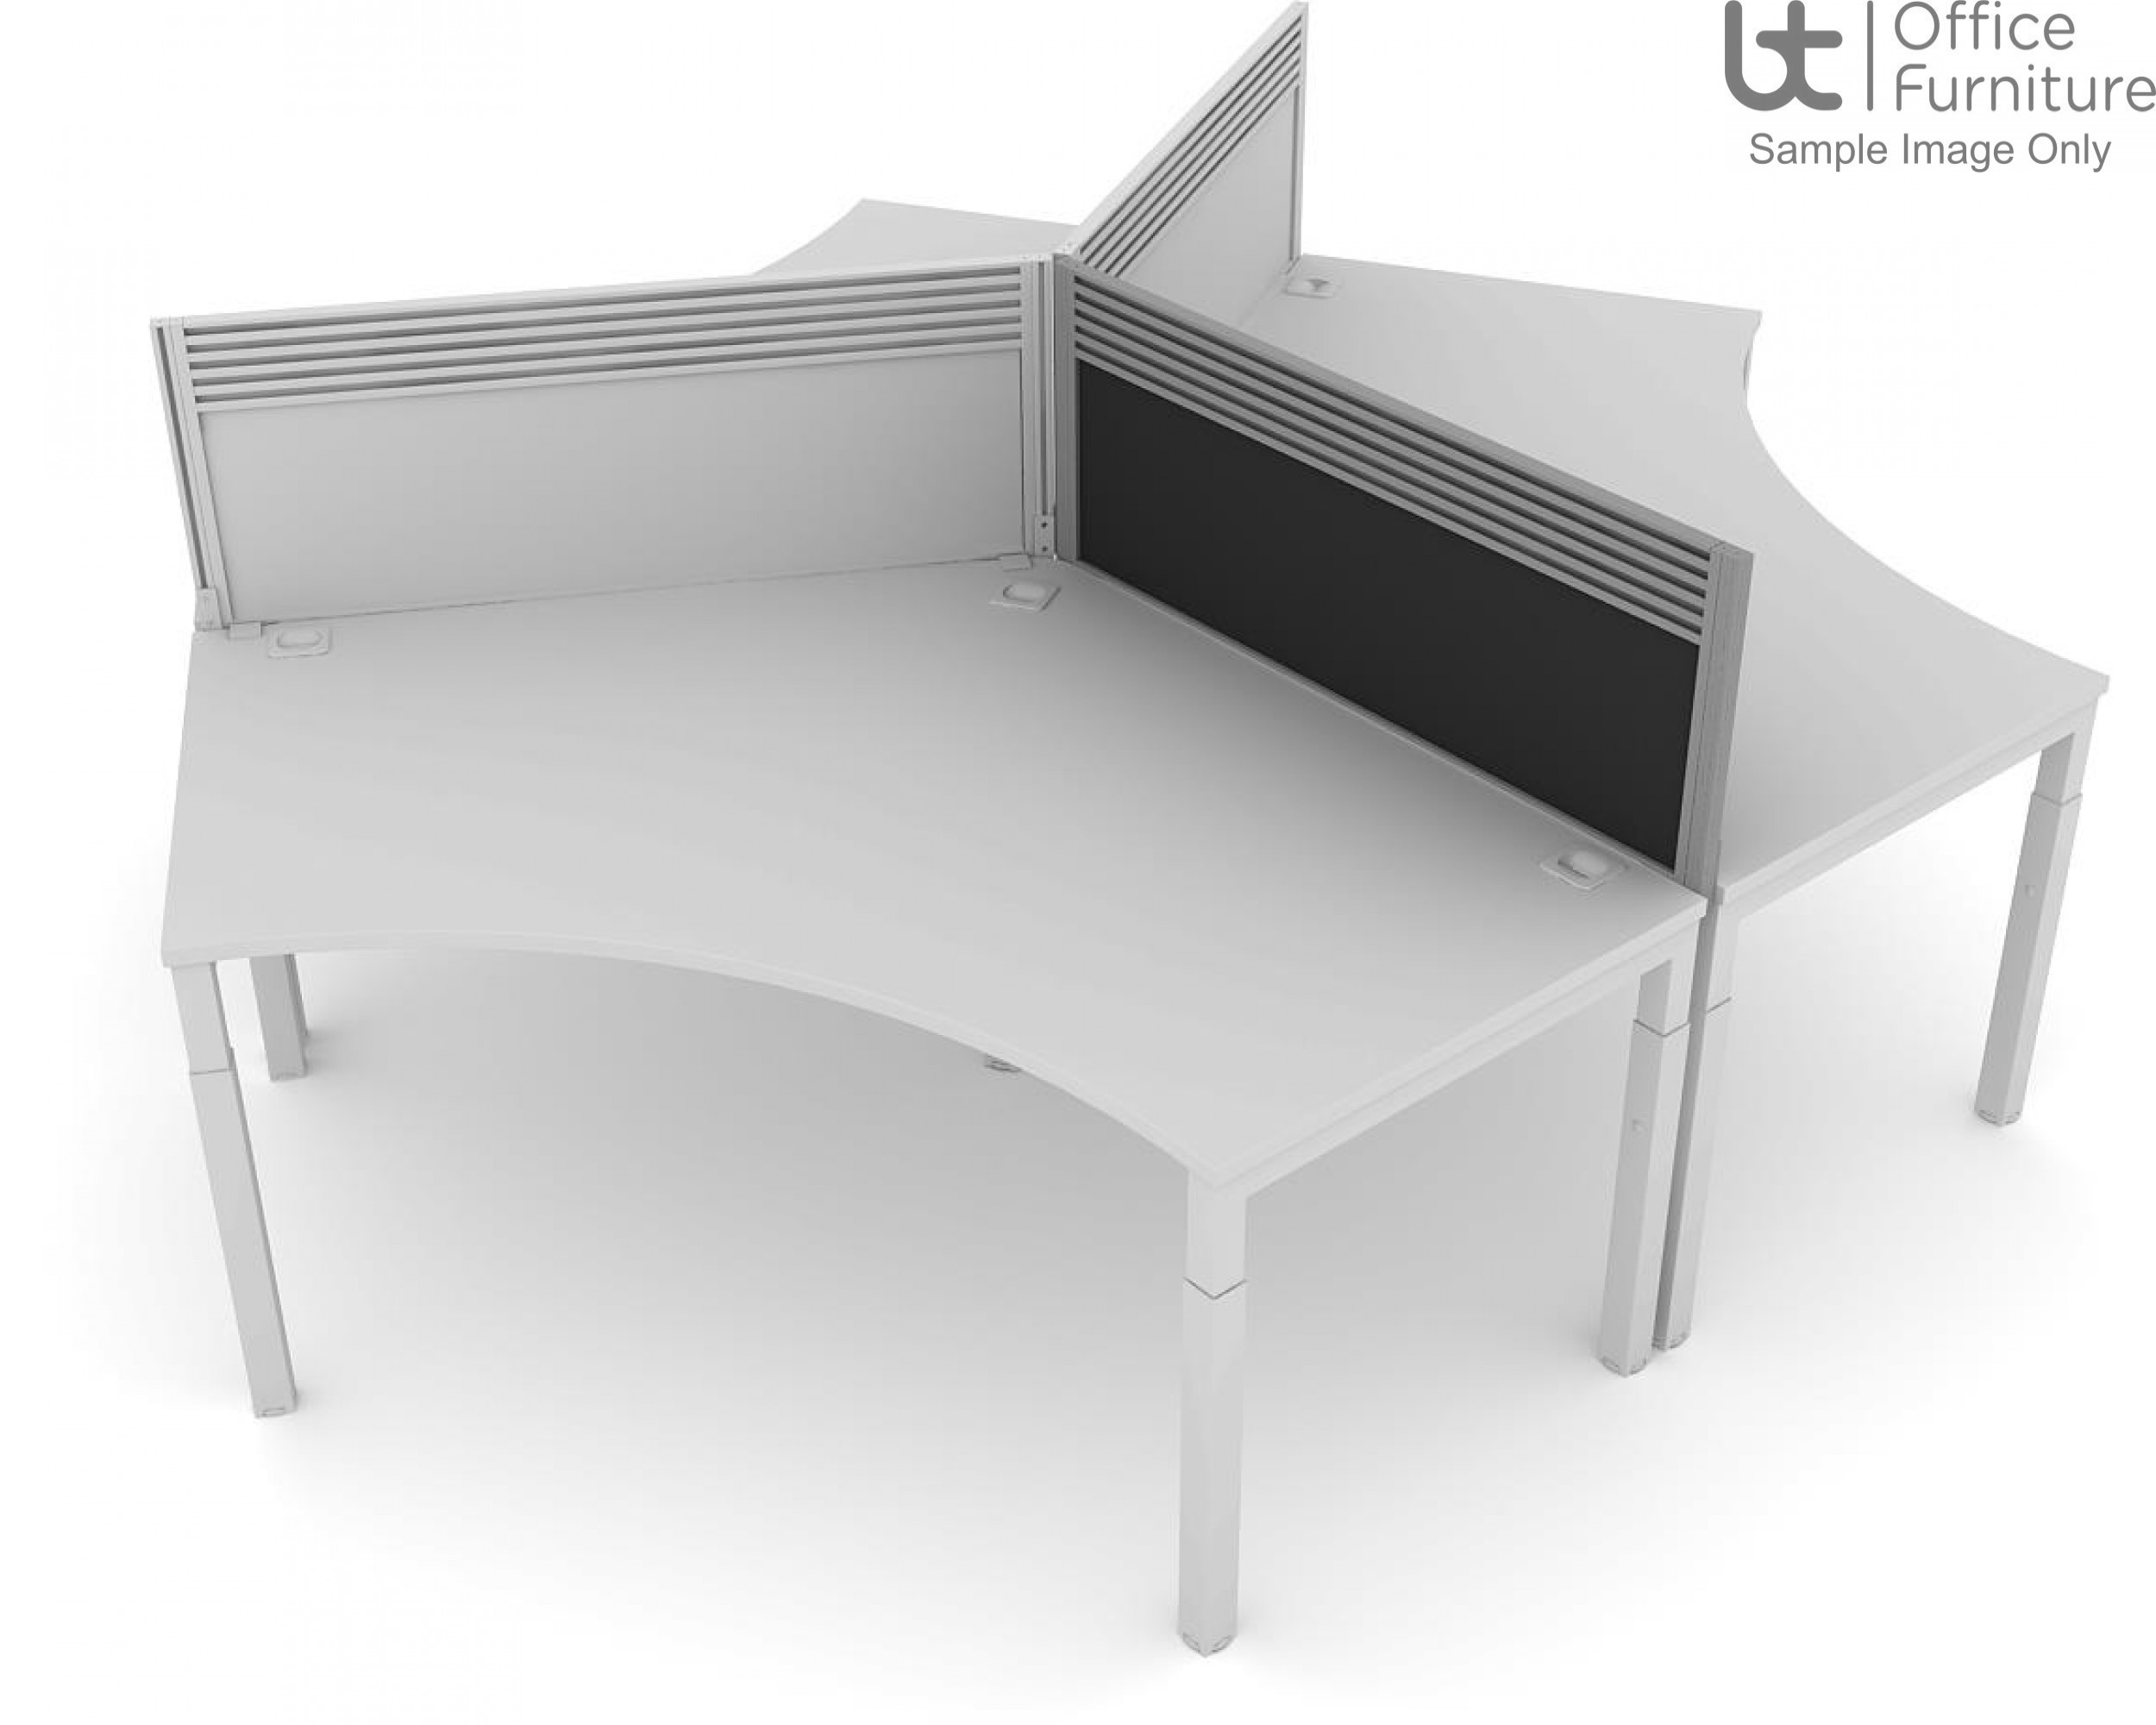 Elite Advance System Screen 120 Degree with Management Rail - Fabric For Advance only